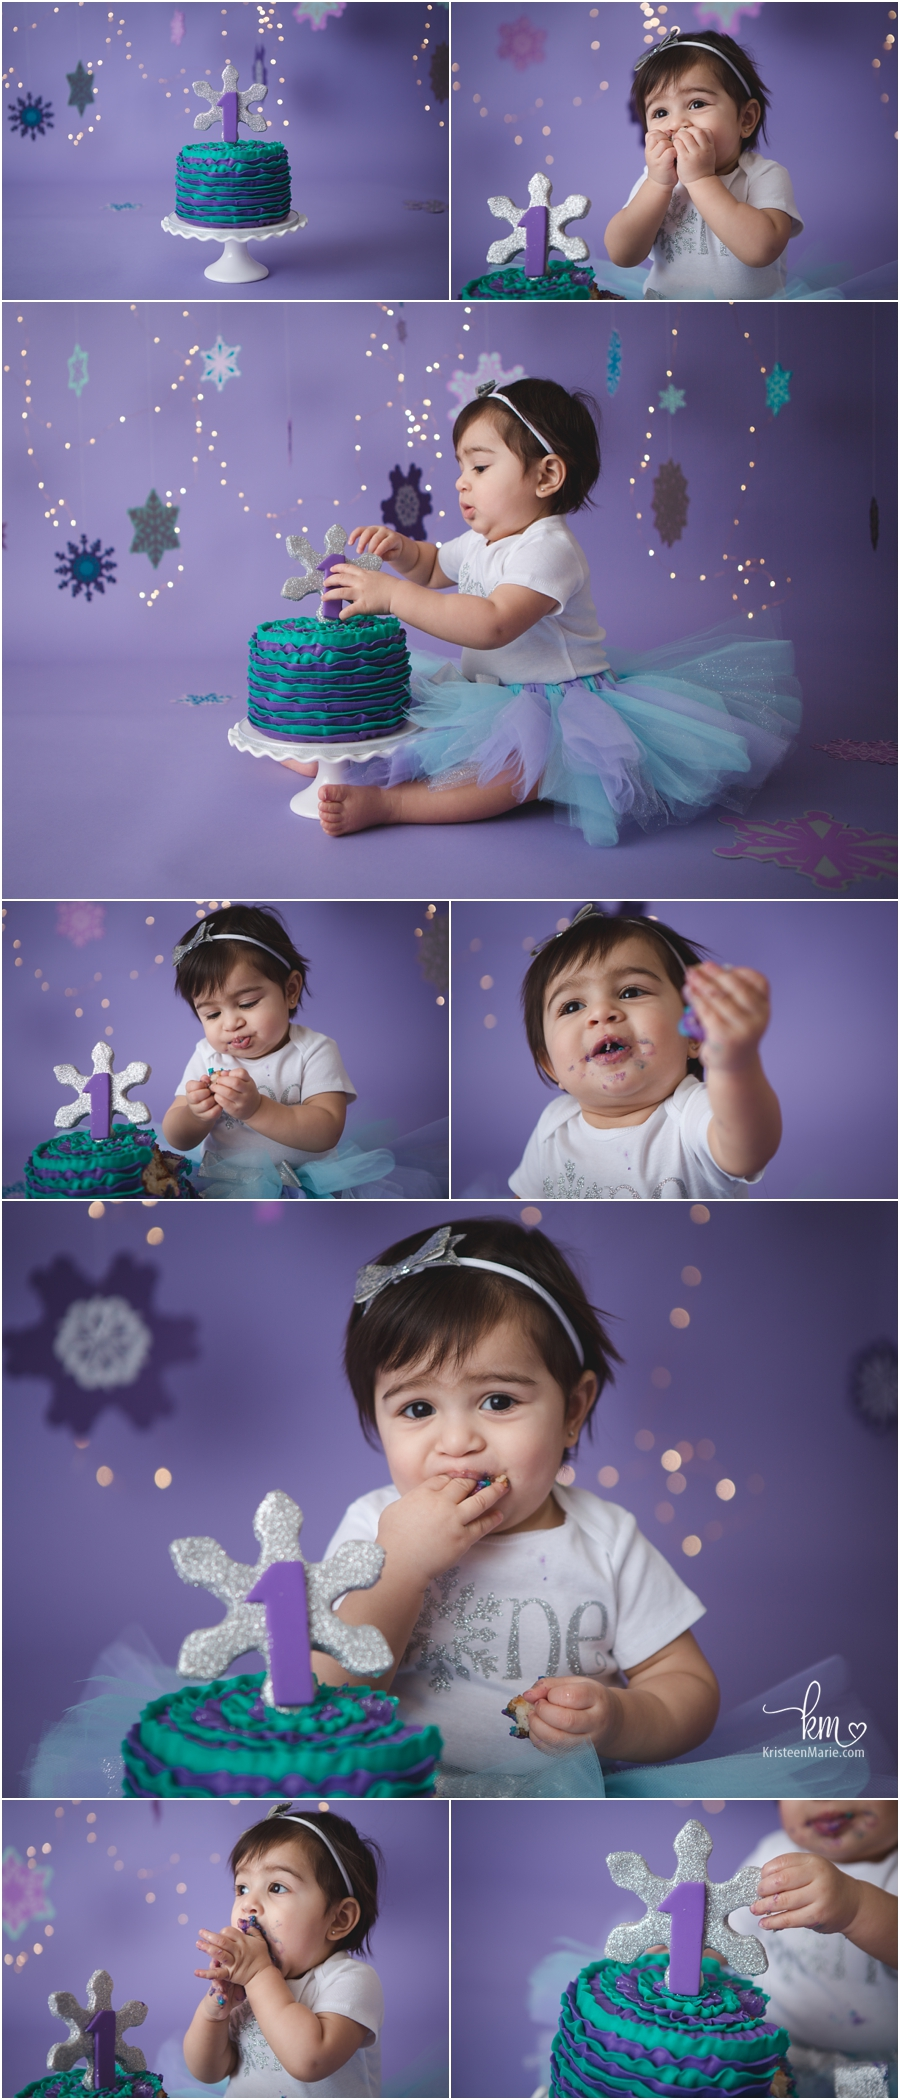 purple and teal cake smash session - snow flake themed with twinkle lights